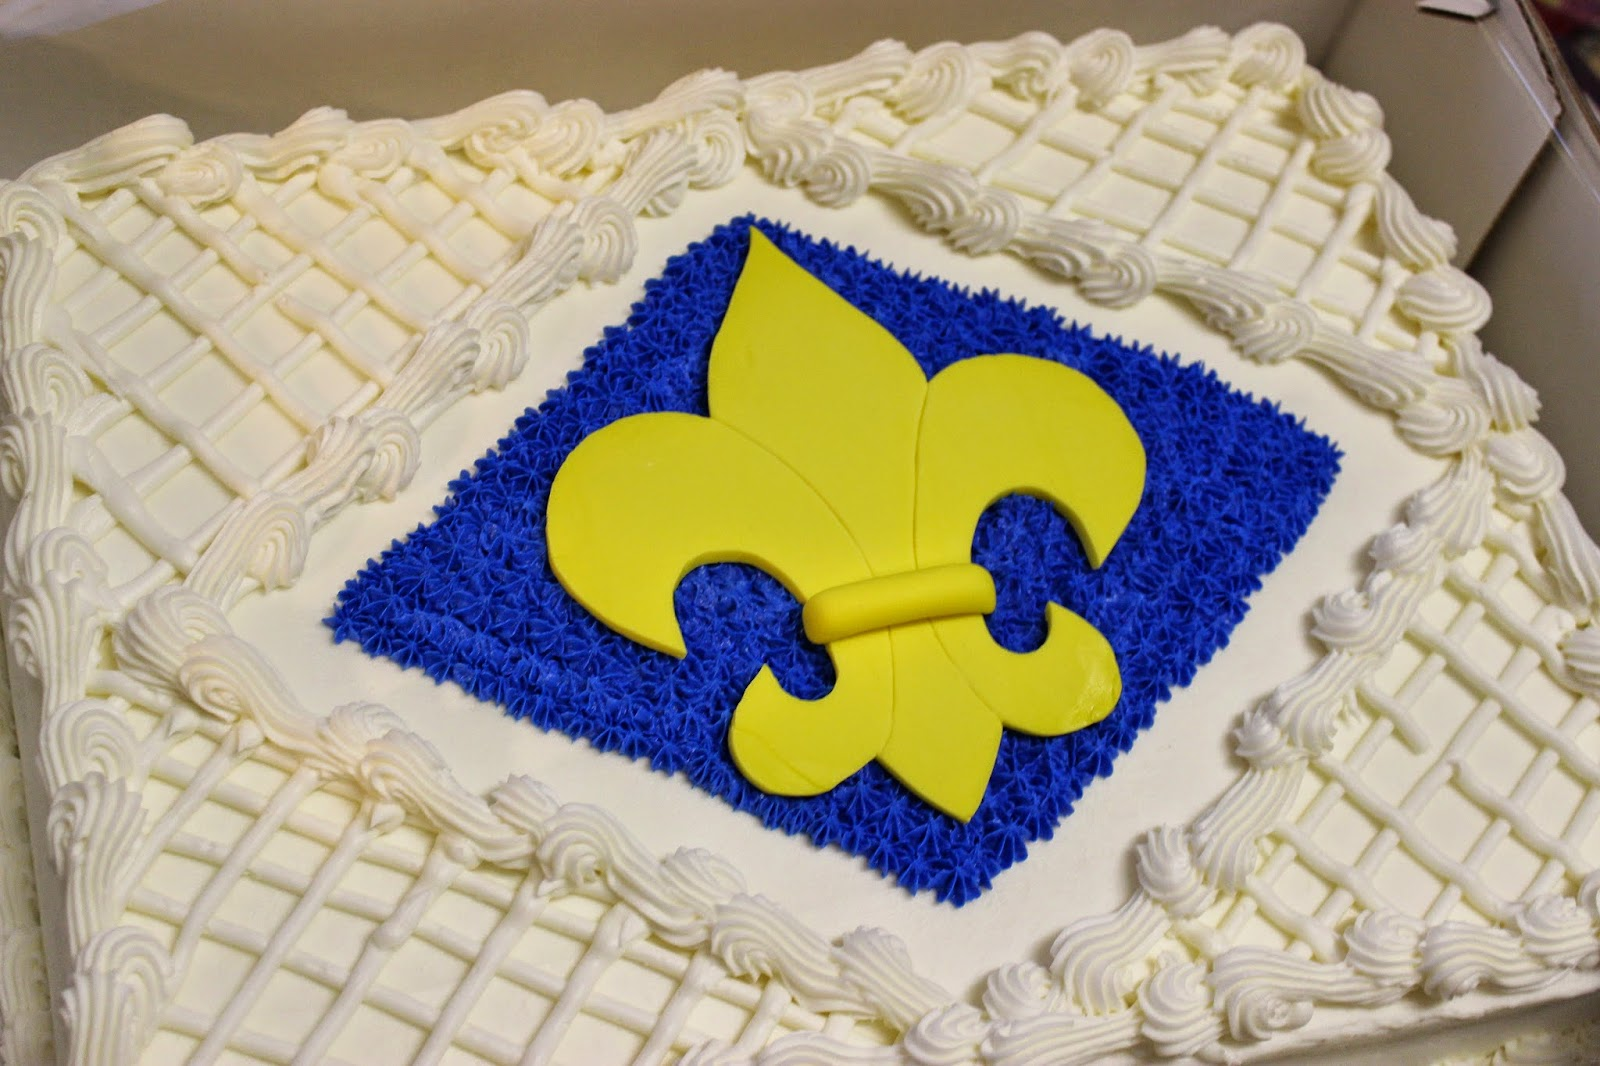 Cake Impressions by Wendy: Blue and Gold {Costco} Cake